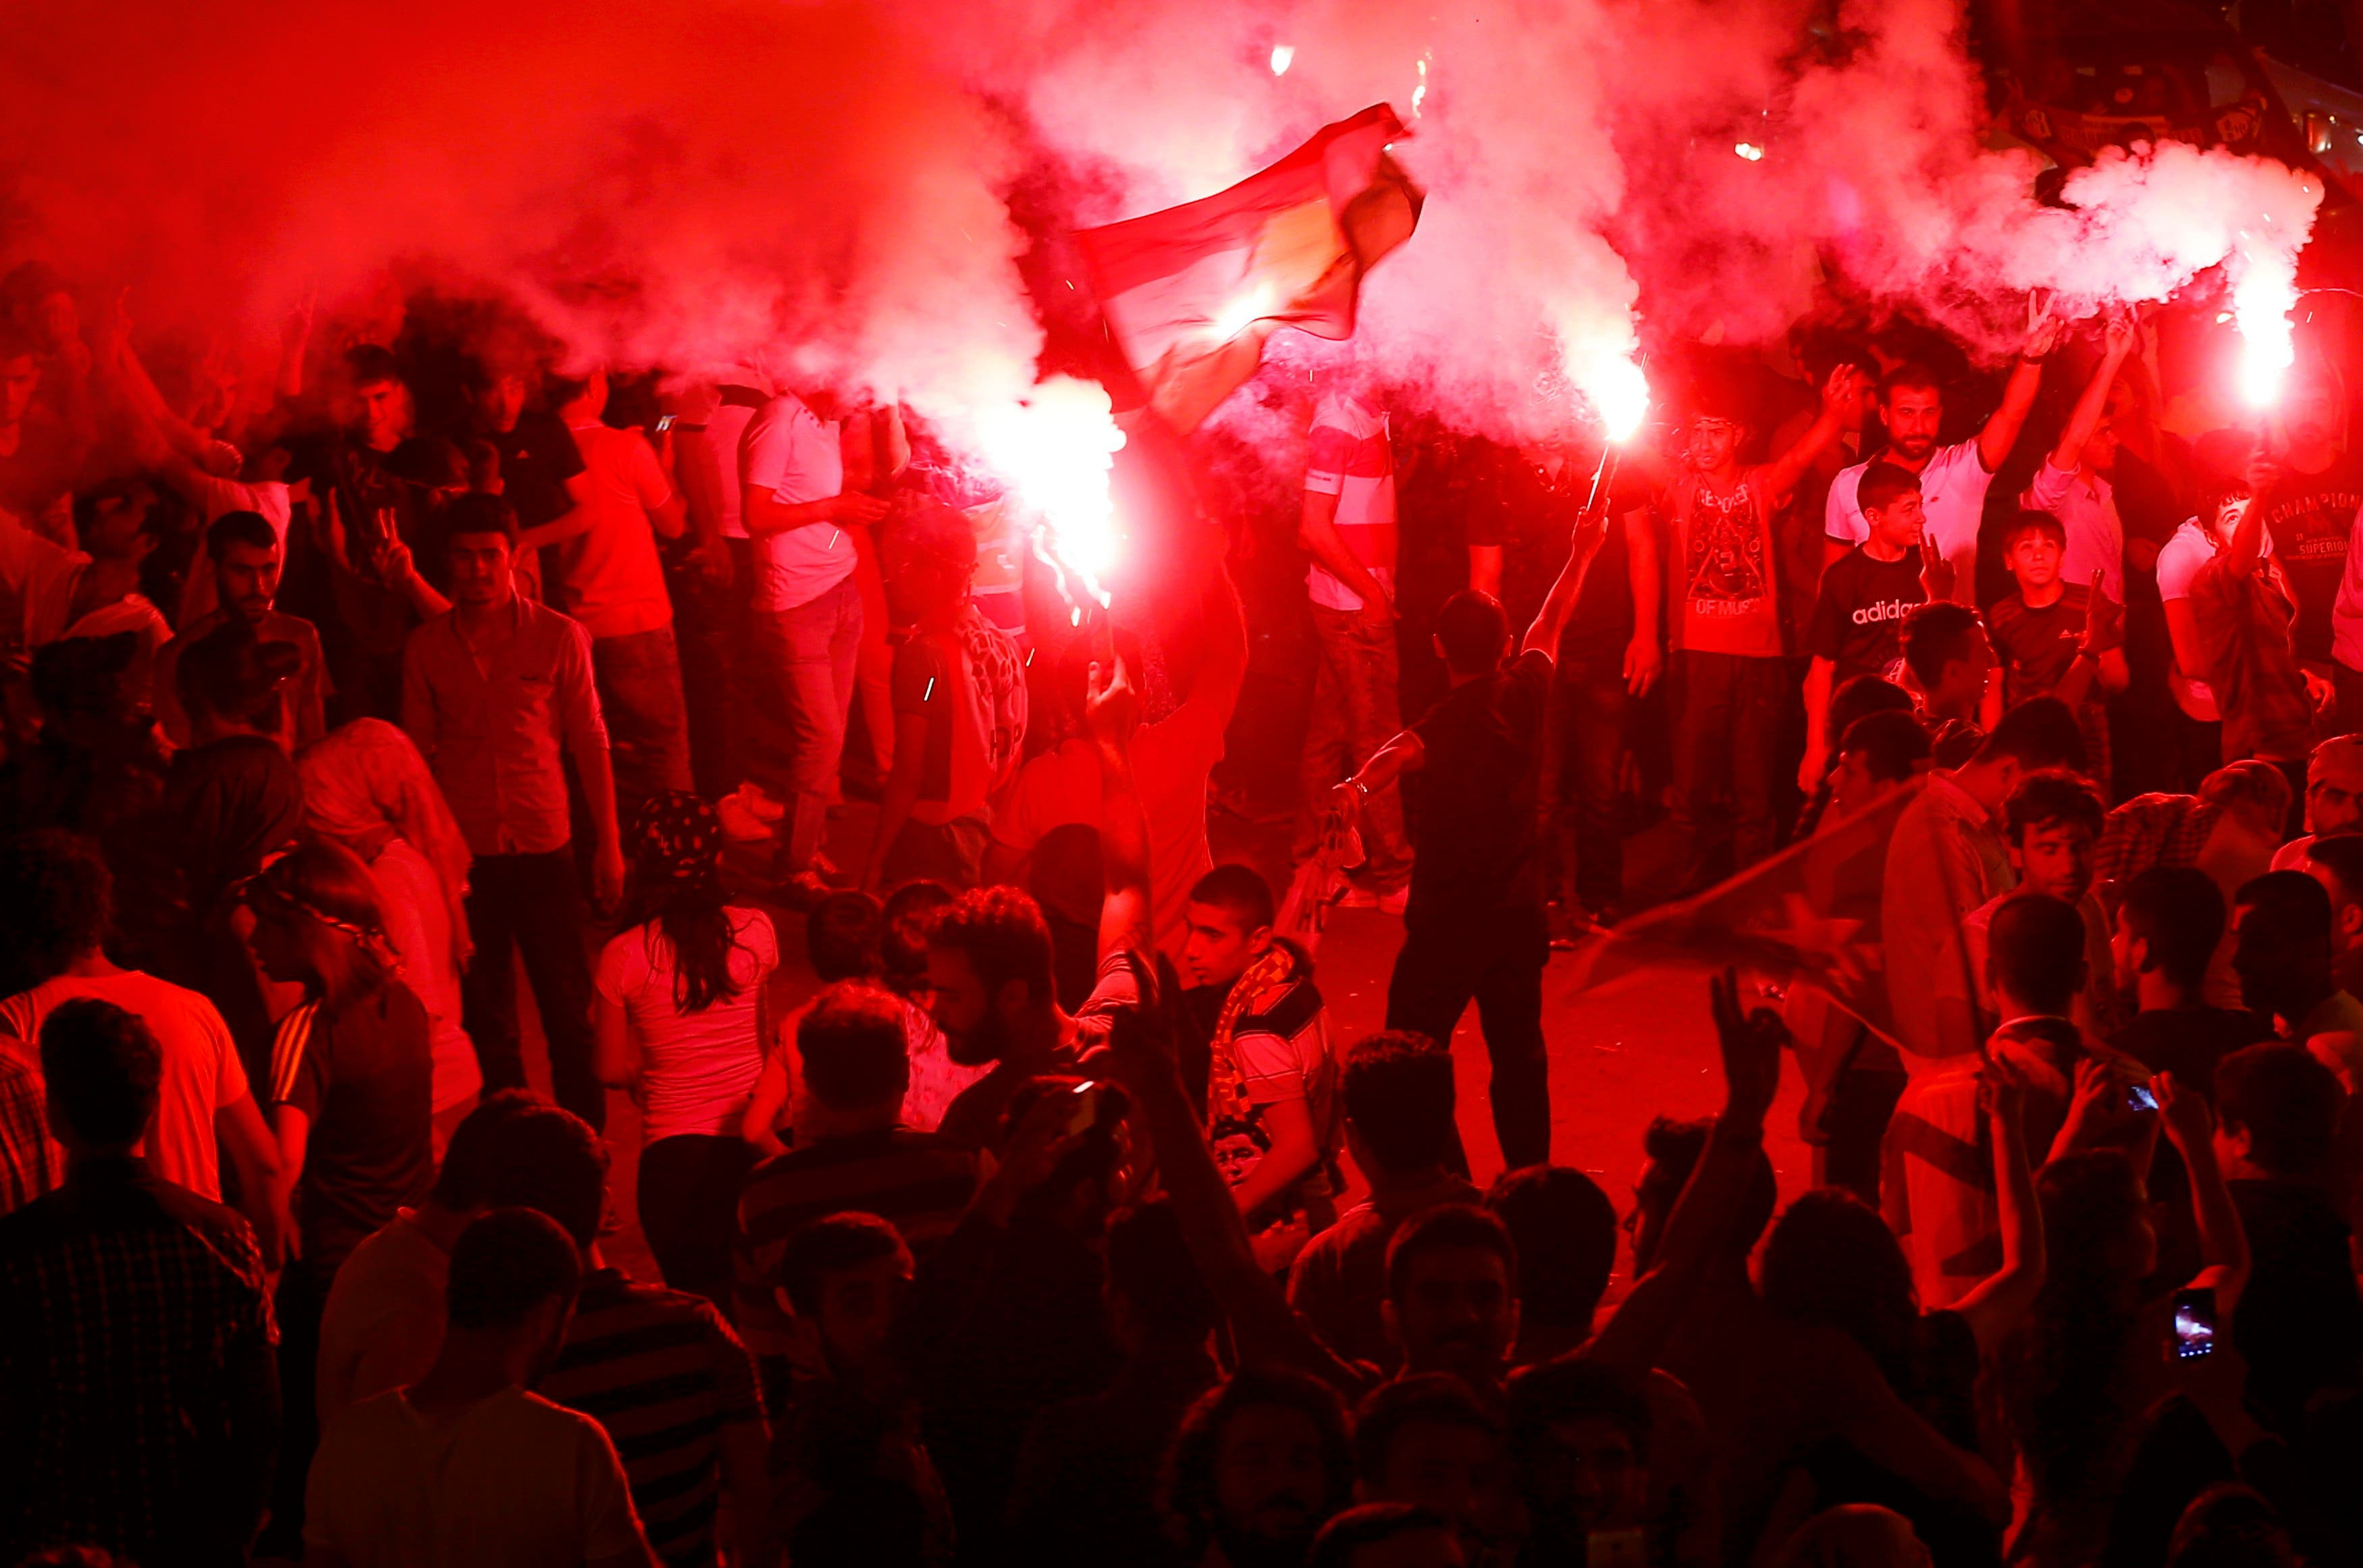 Supporters light flares as they celebrate early election results outside the pro-Kurdish Peoples' Democratic Party (HDP) headquarters in Diyarbakir, Turkey, June 7, 2015. (Reuters)